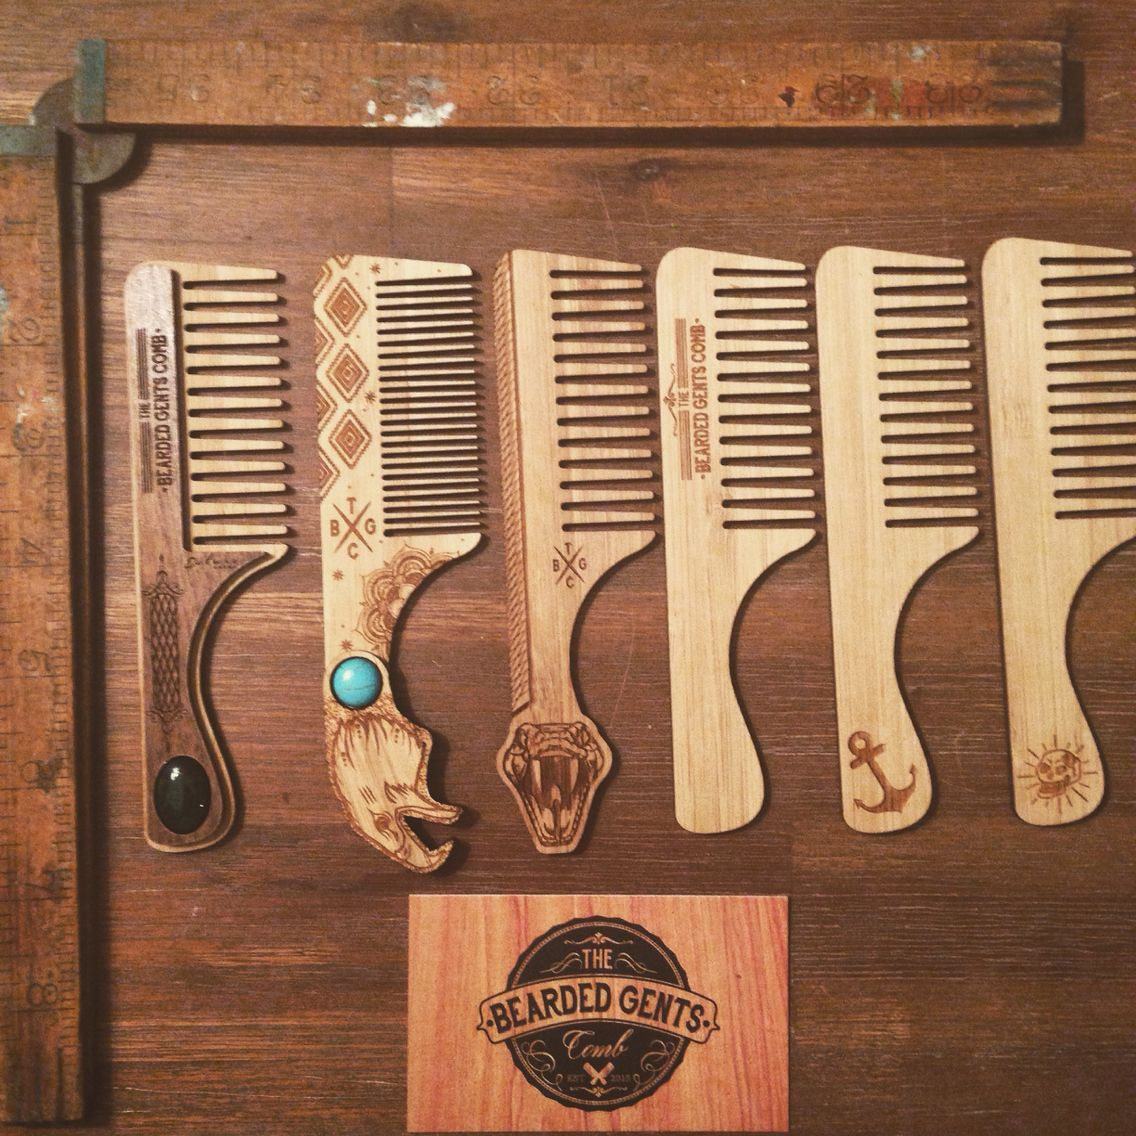 Our Short Shank Beard Comb Range •KEEP IT COMBED GENTS• www